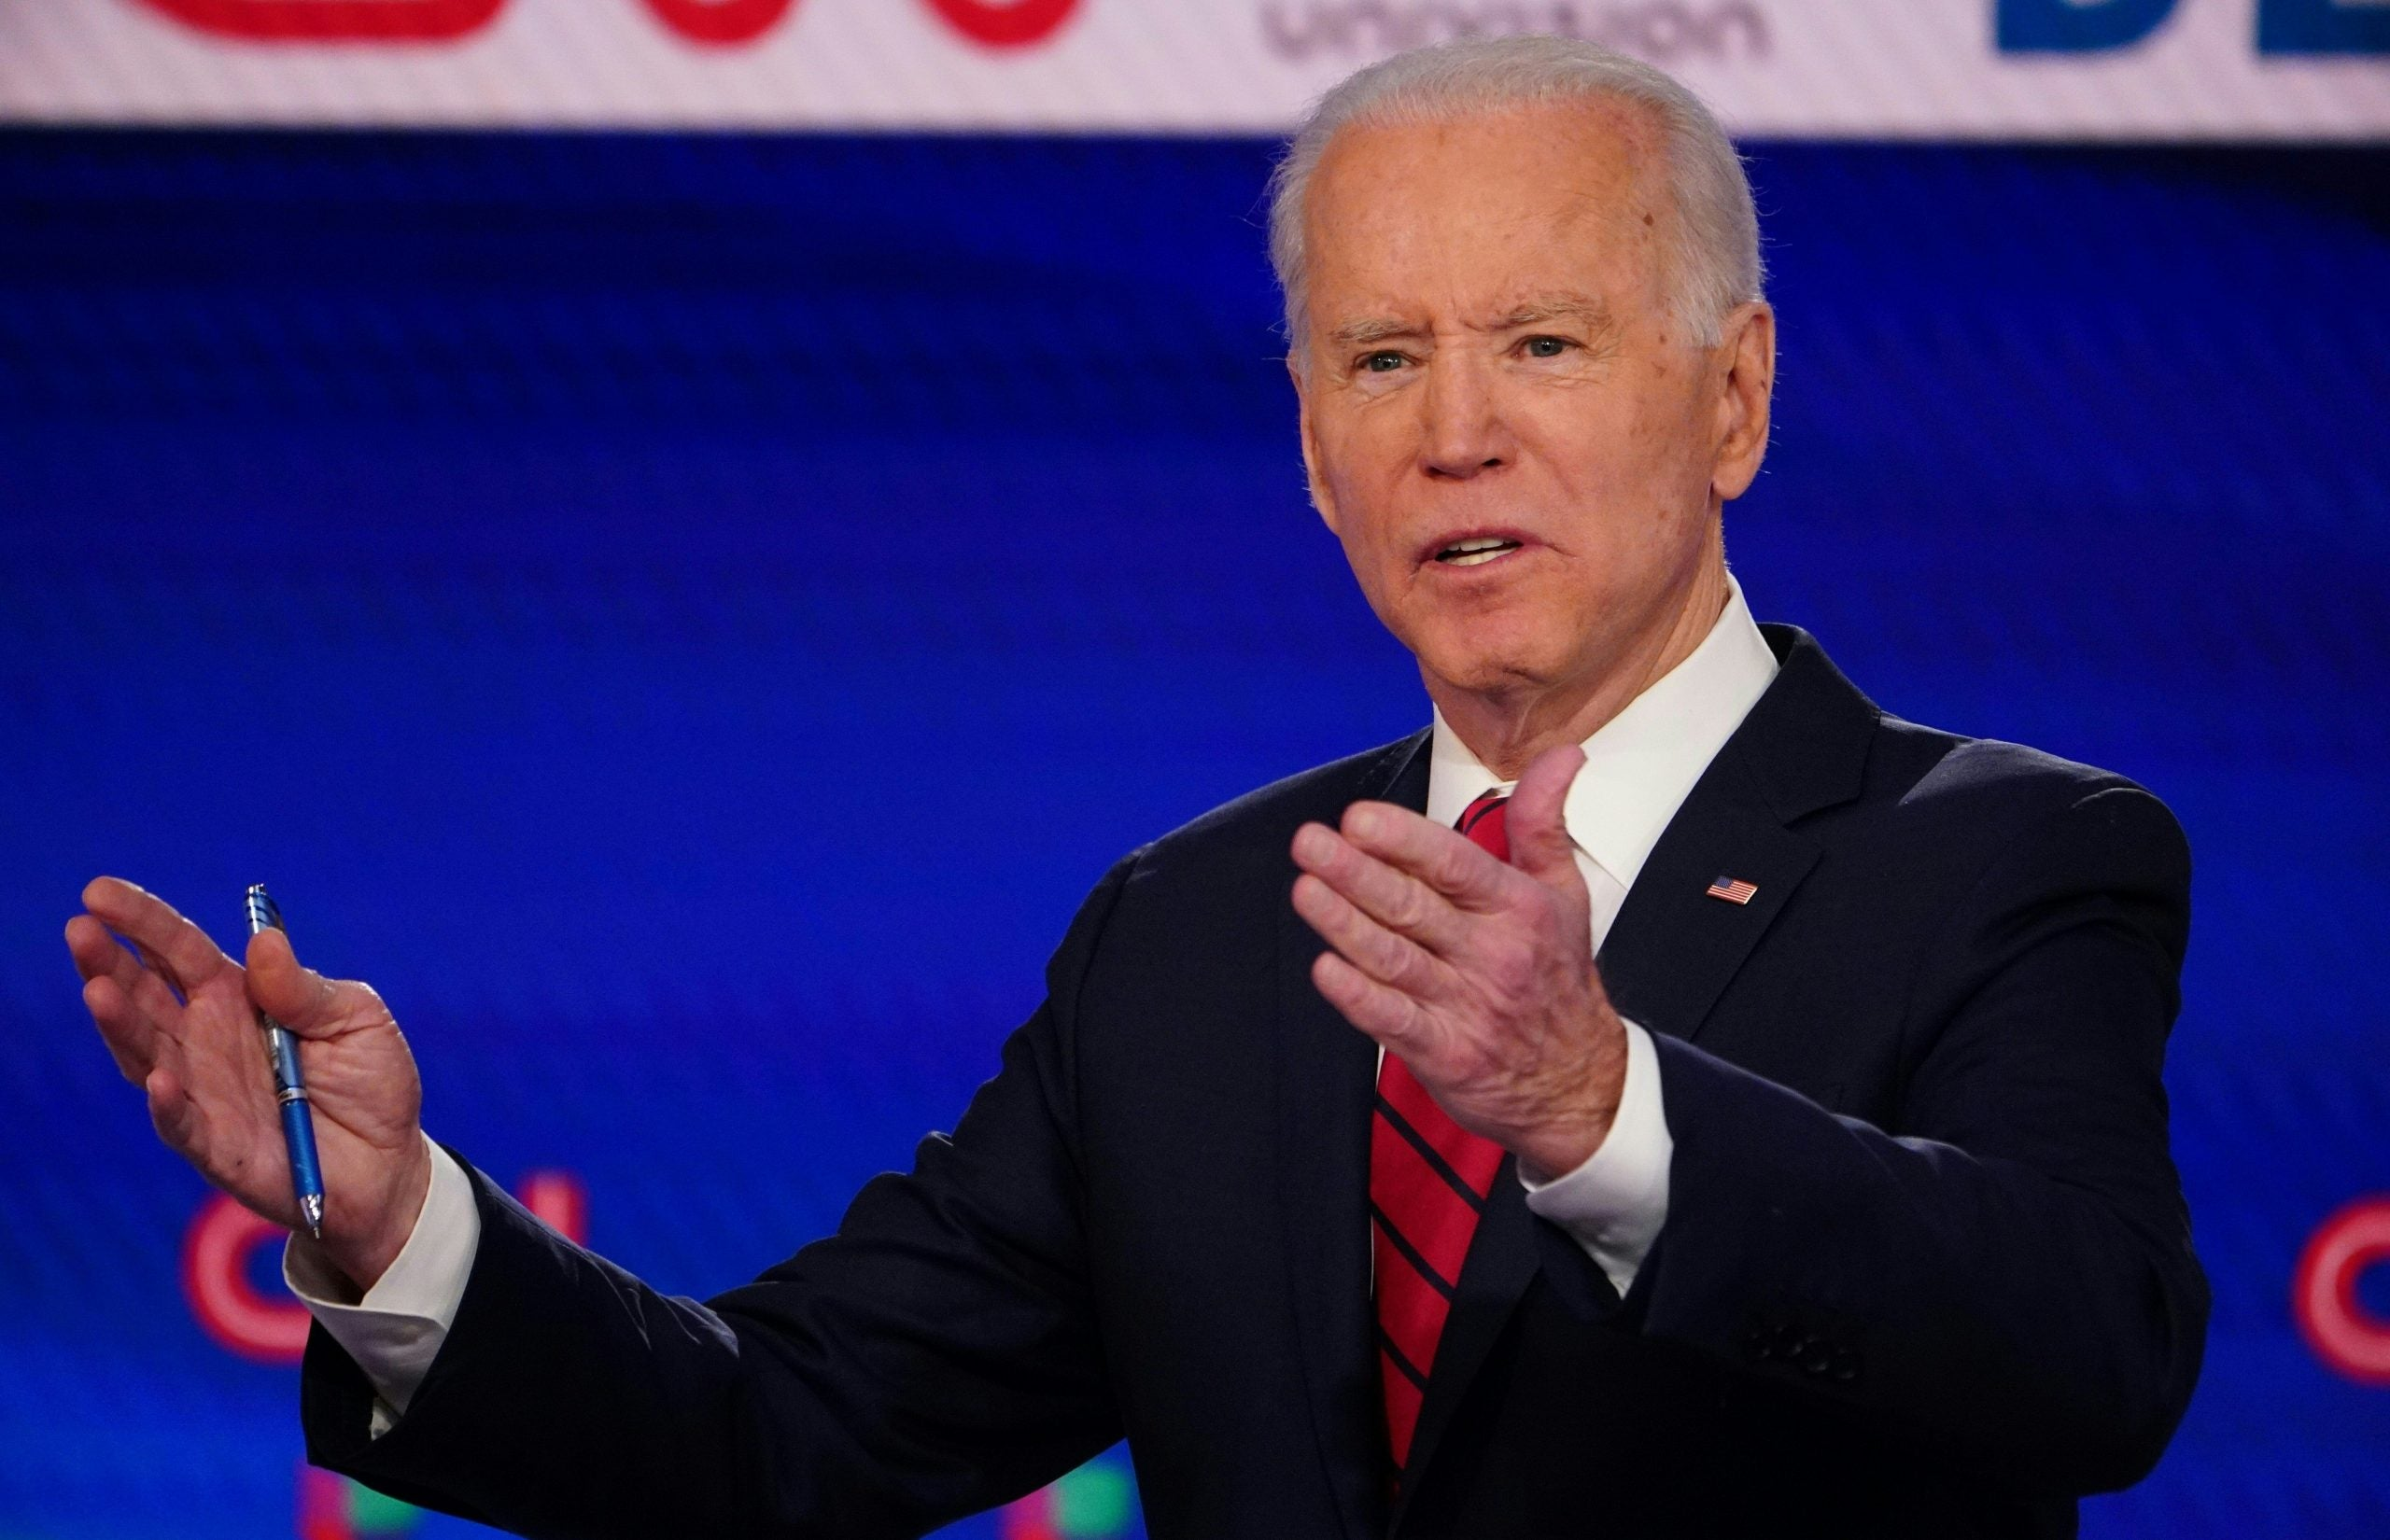 Joe Biden - the former VP says sexual assaualt allegations against him are not true.